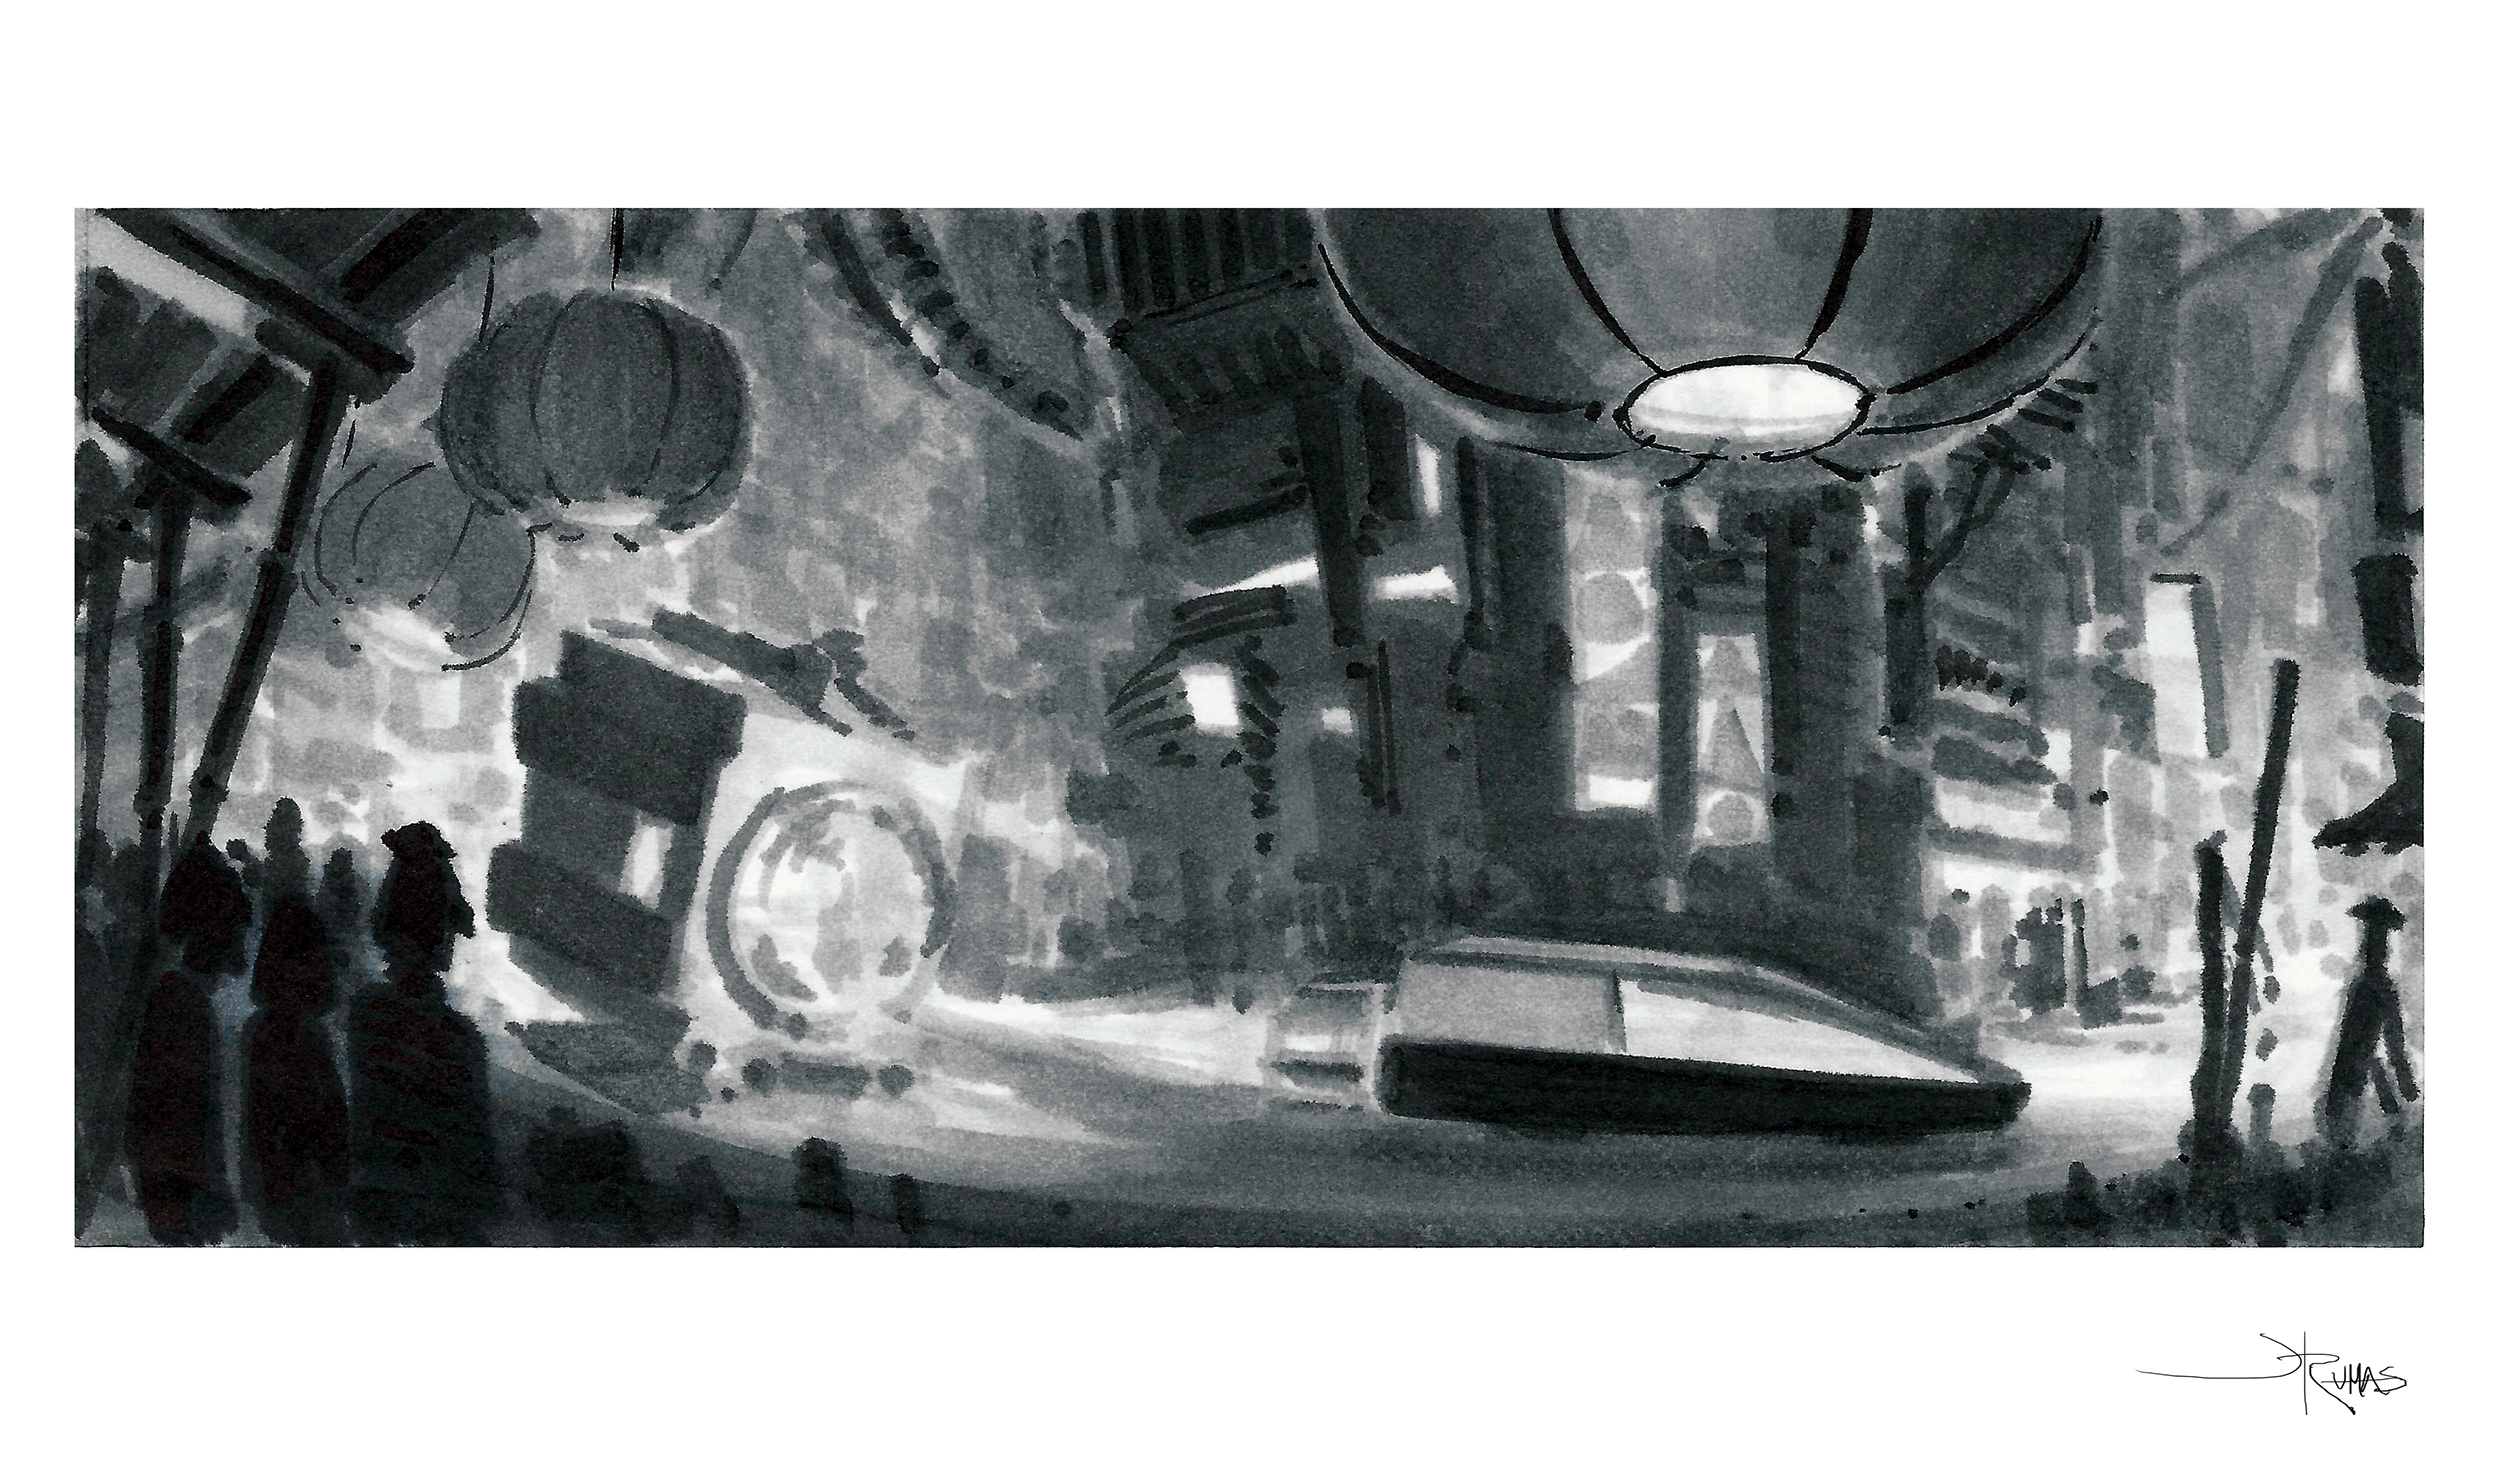 Racer vs Chaser + storyboard frame by Jeremy Rumas + Copic markers + sci-fi concept art + storyboards + NYC storyboard artist + www.jeremyrumas.com .jpg